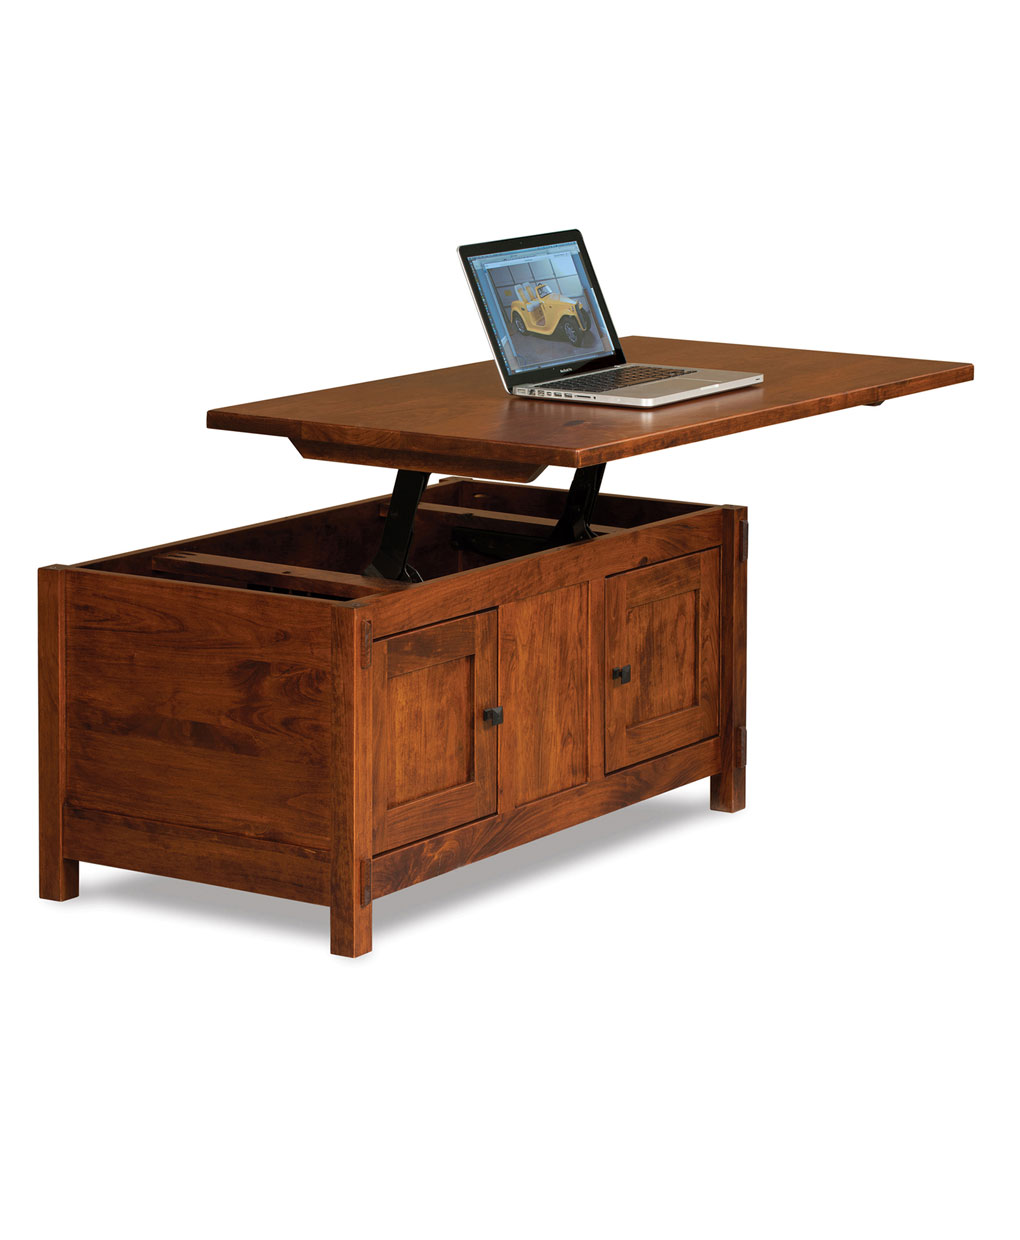 Centennial Enclosed Coffee Table With Lift Top Amish Direct Furniture